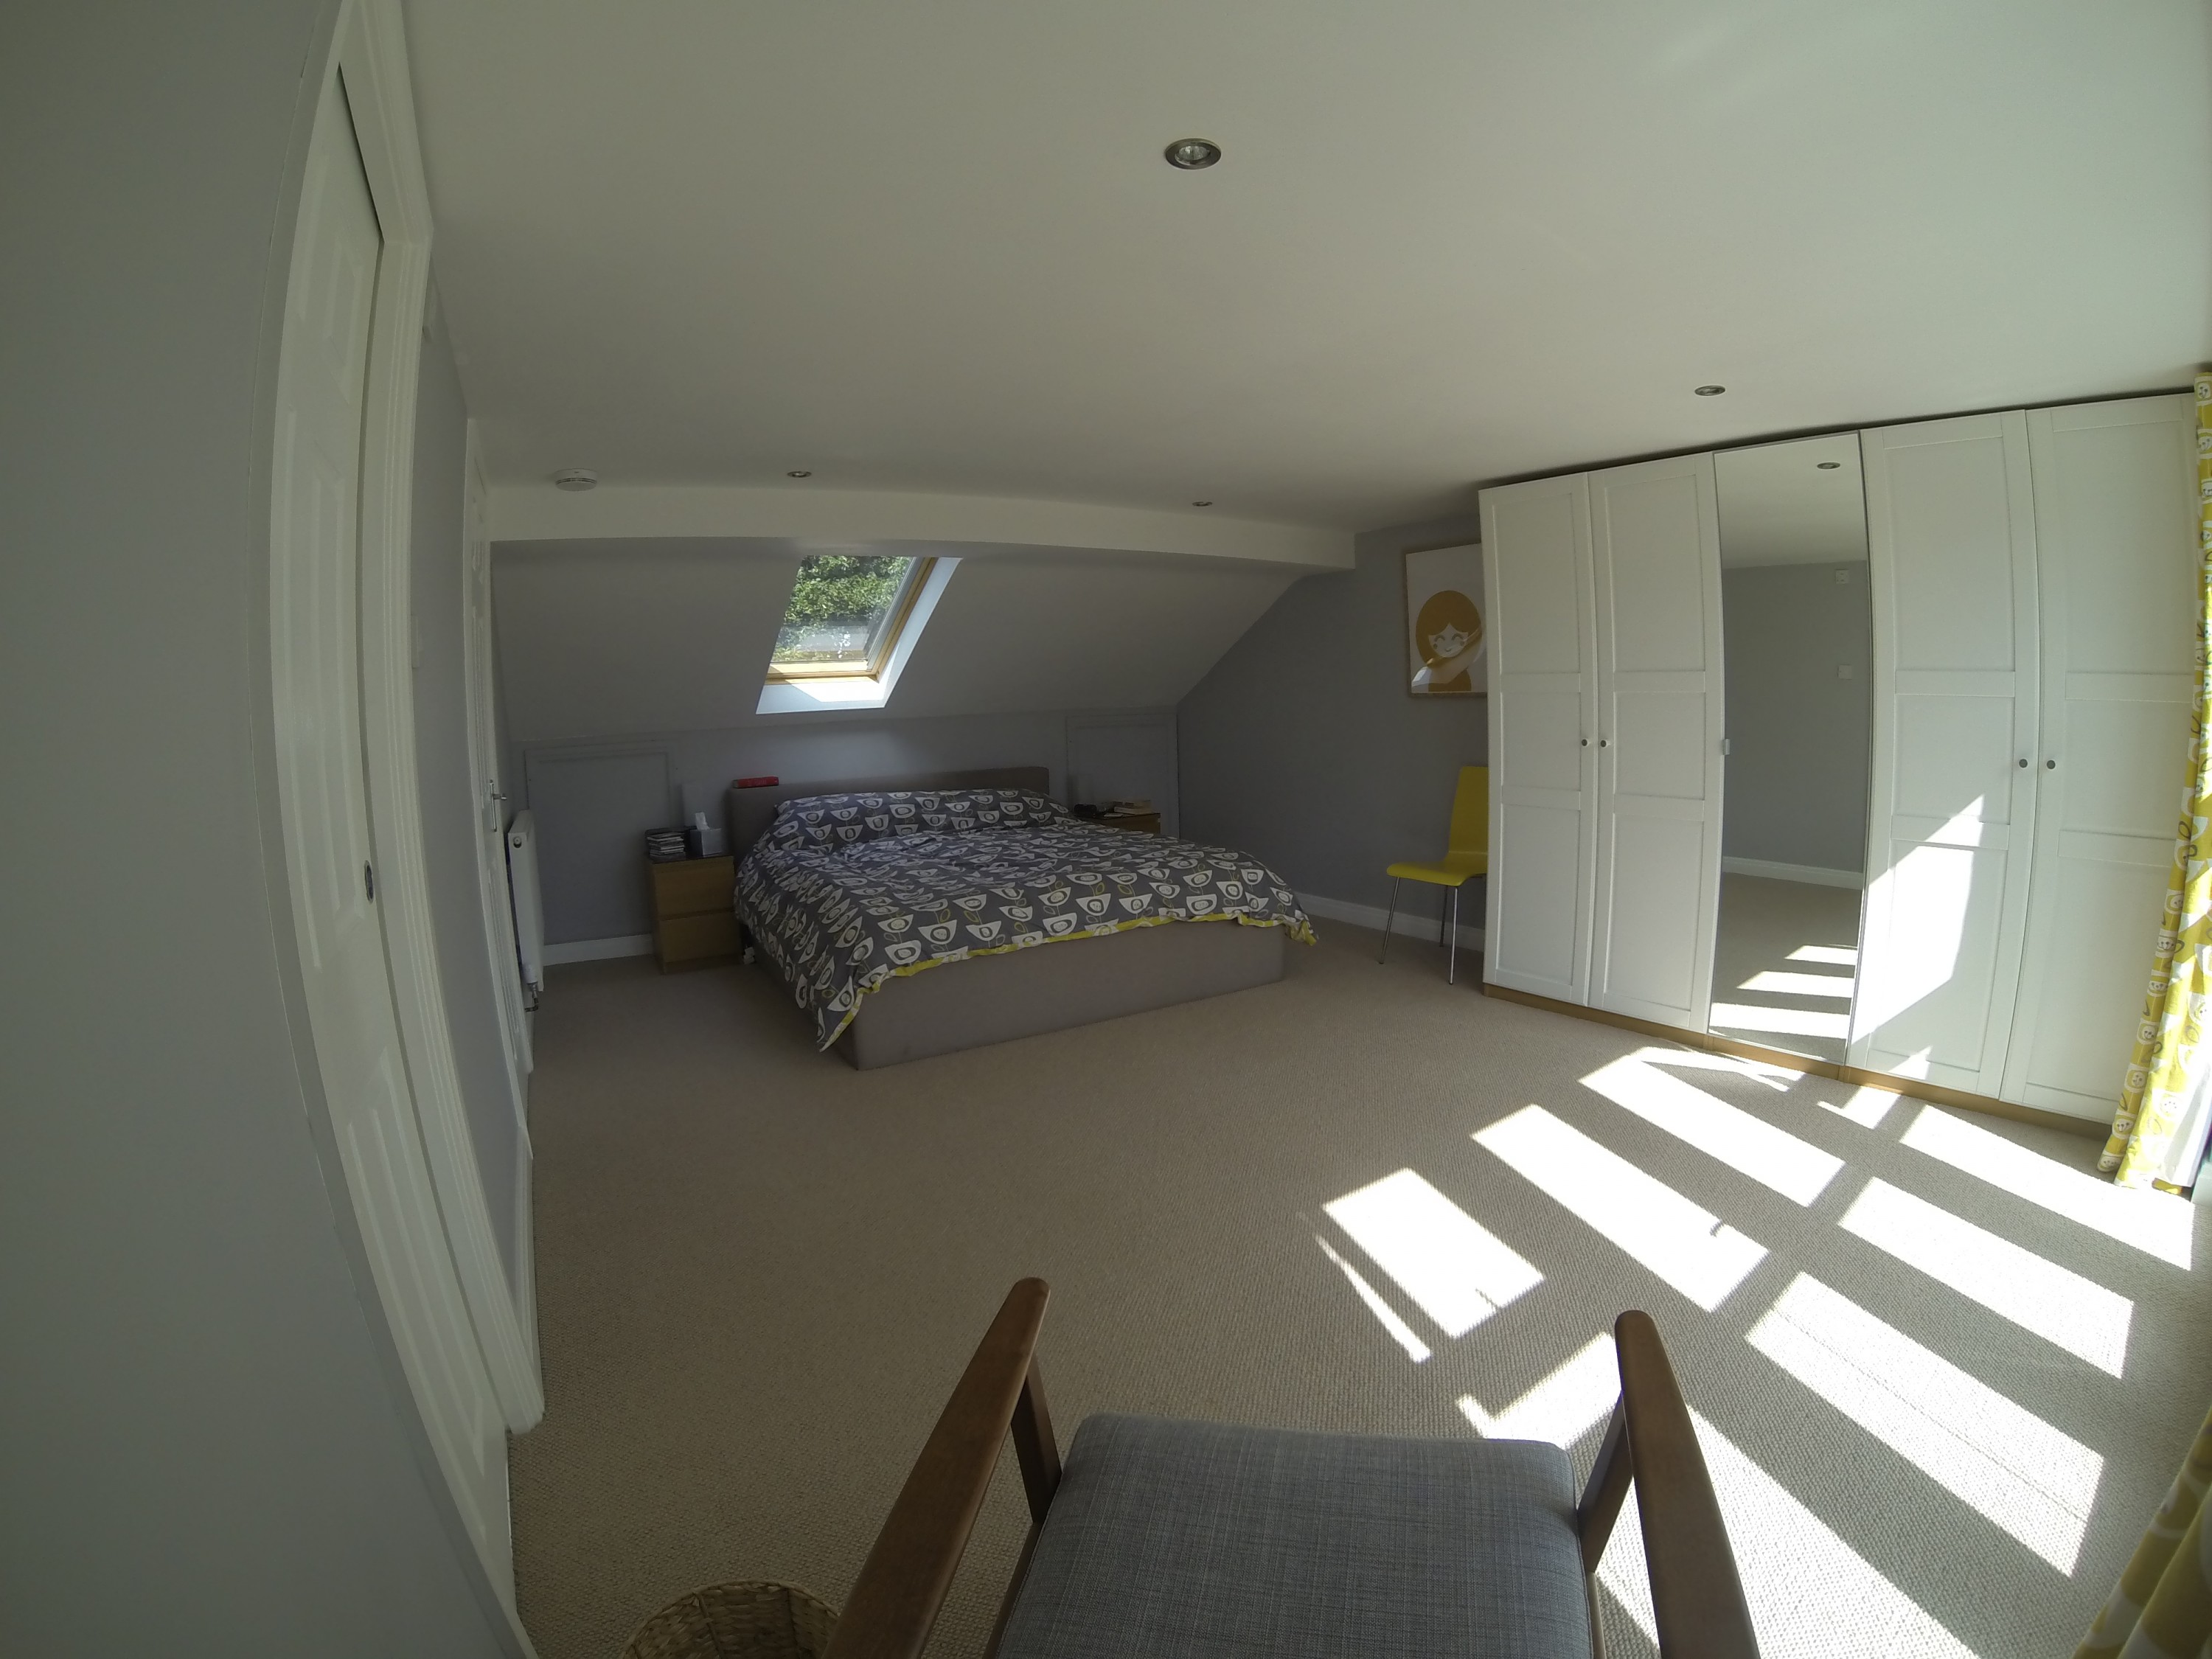 View of the Master bedroom facing the bed and velux window